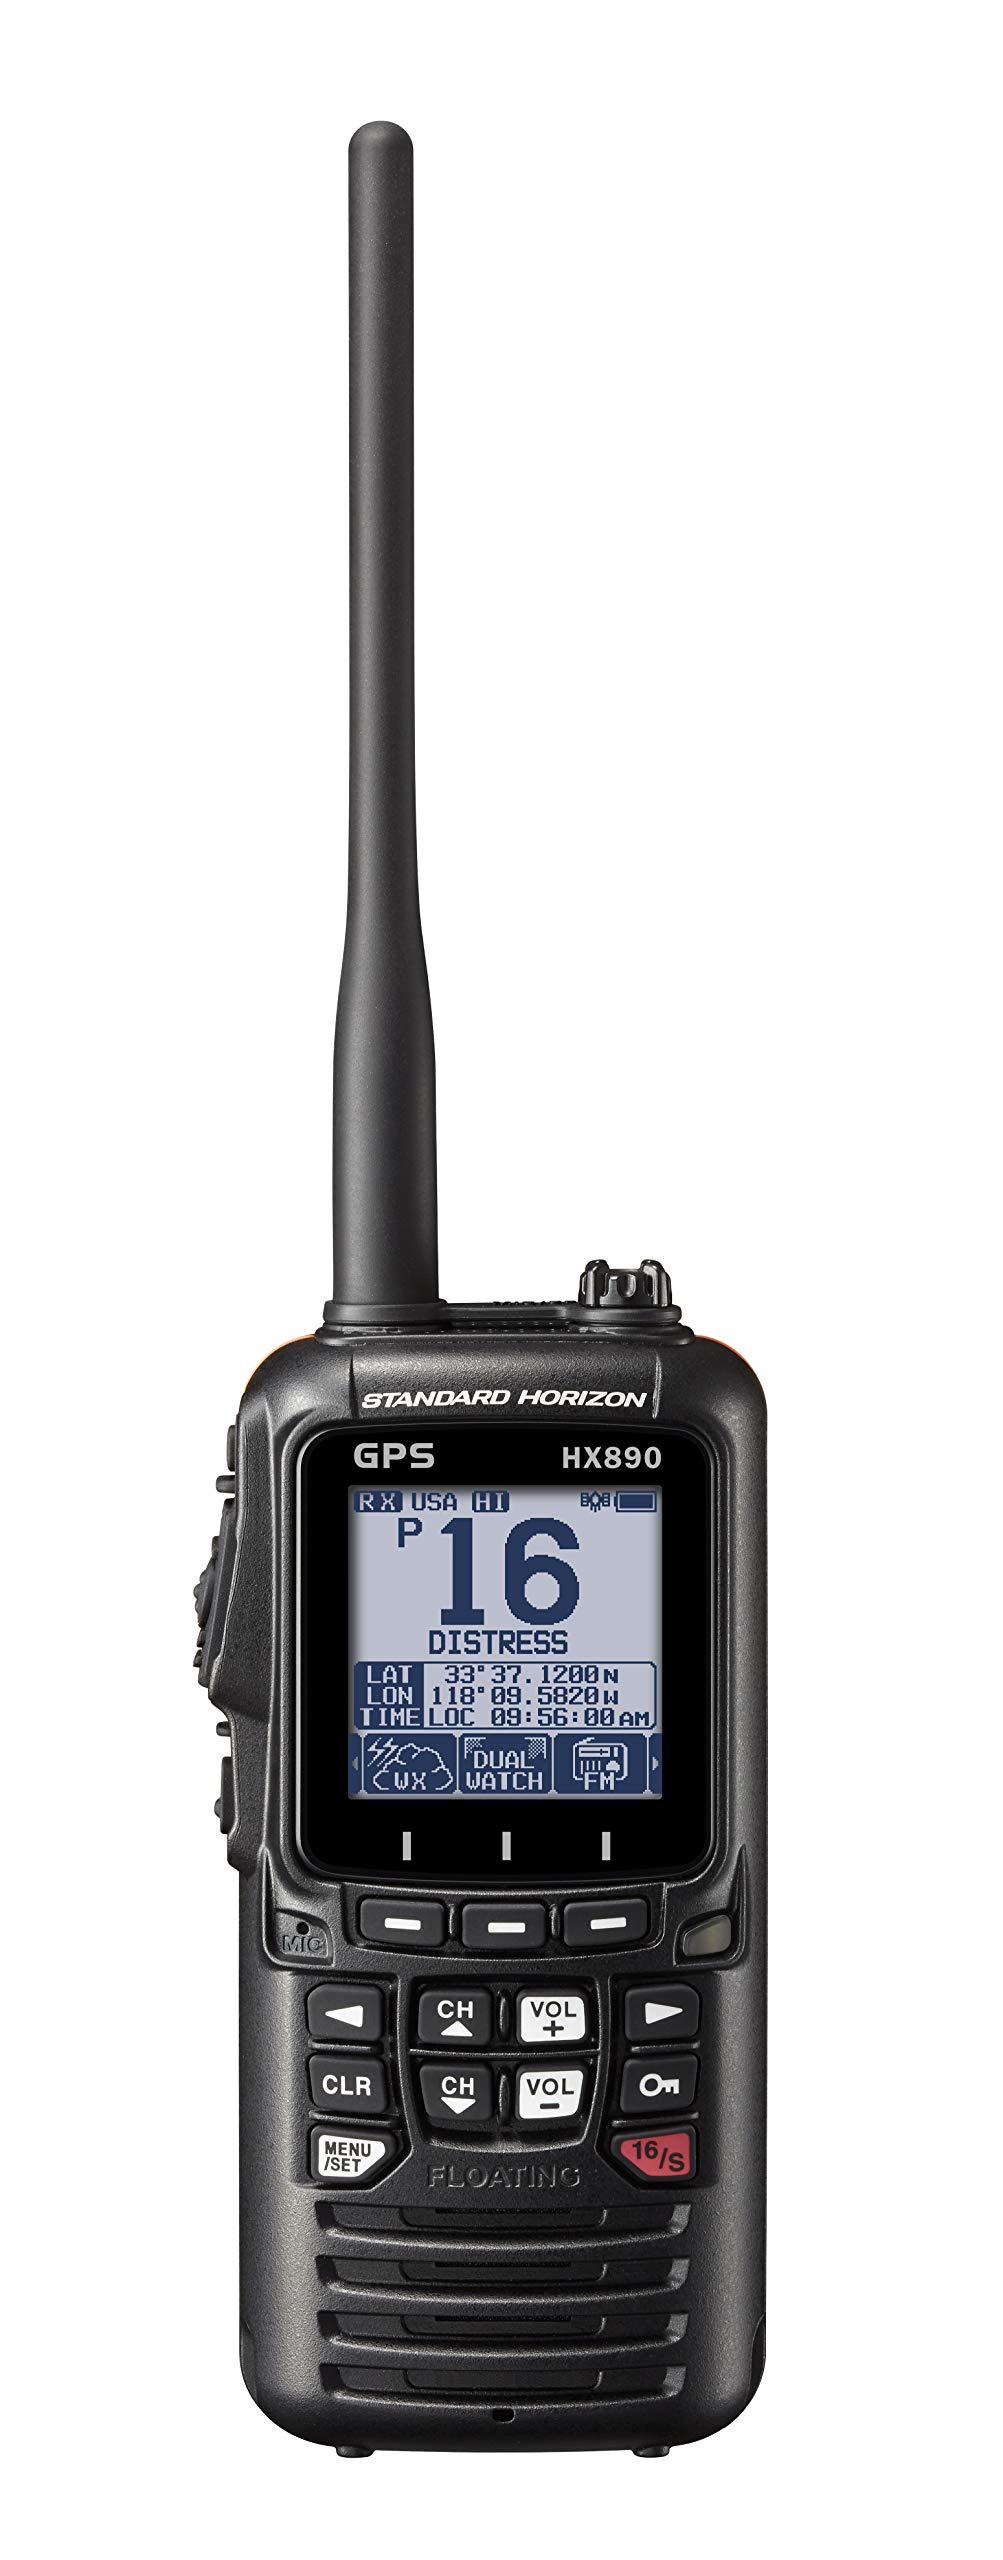 Standard Horizon HX890 Black Handheld VHF - Floating 6 Watt Class H DSC Two Way Radio